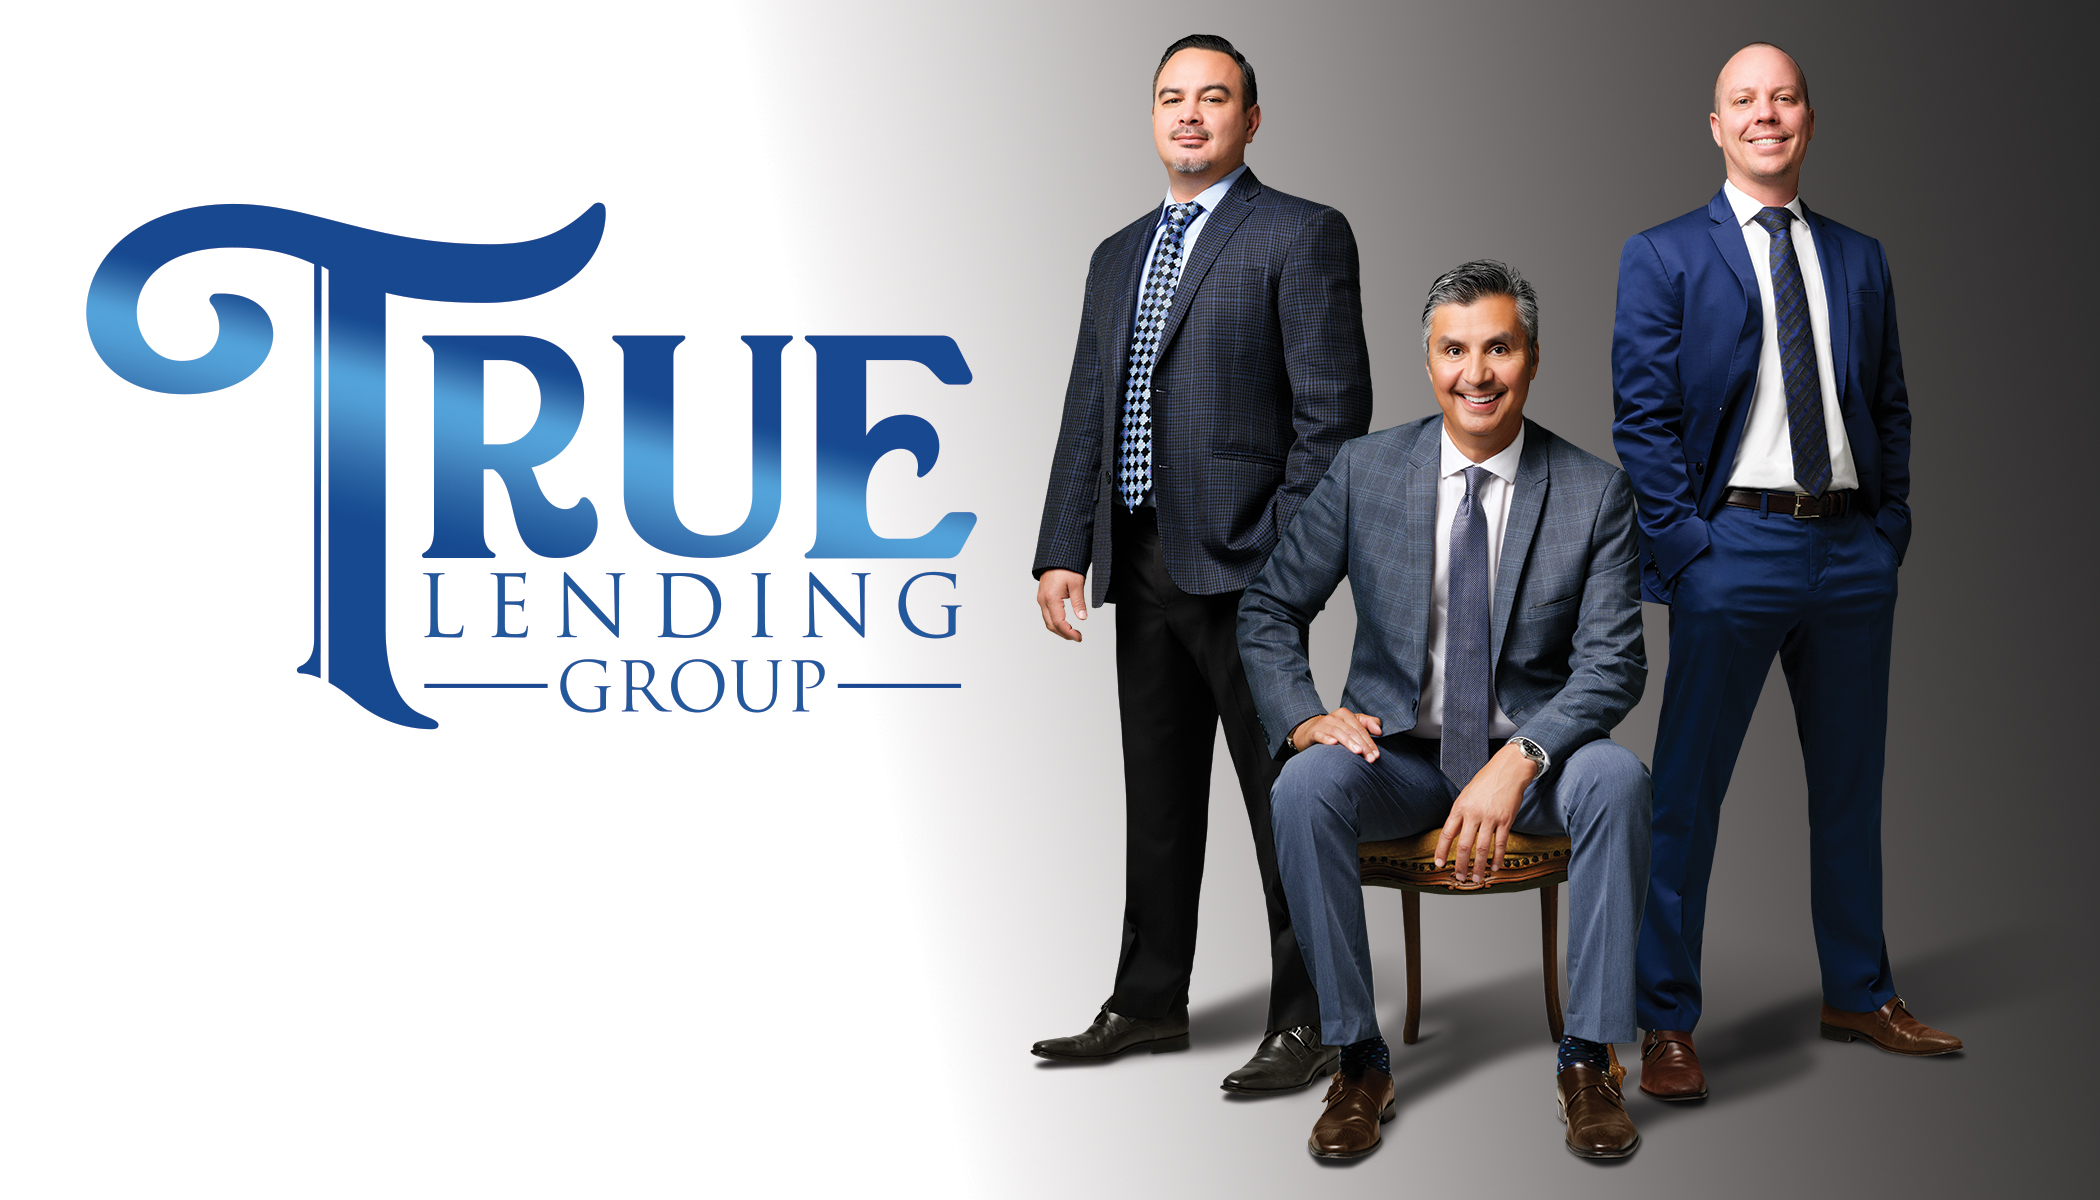 True Lending Group 01.jpg